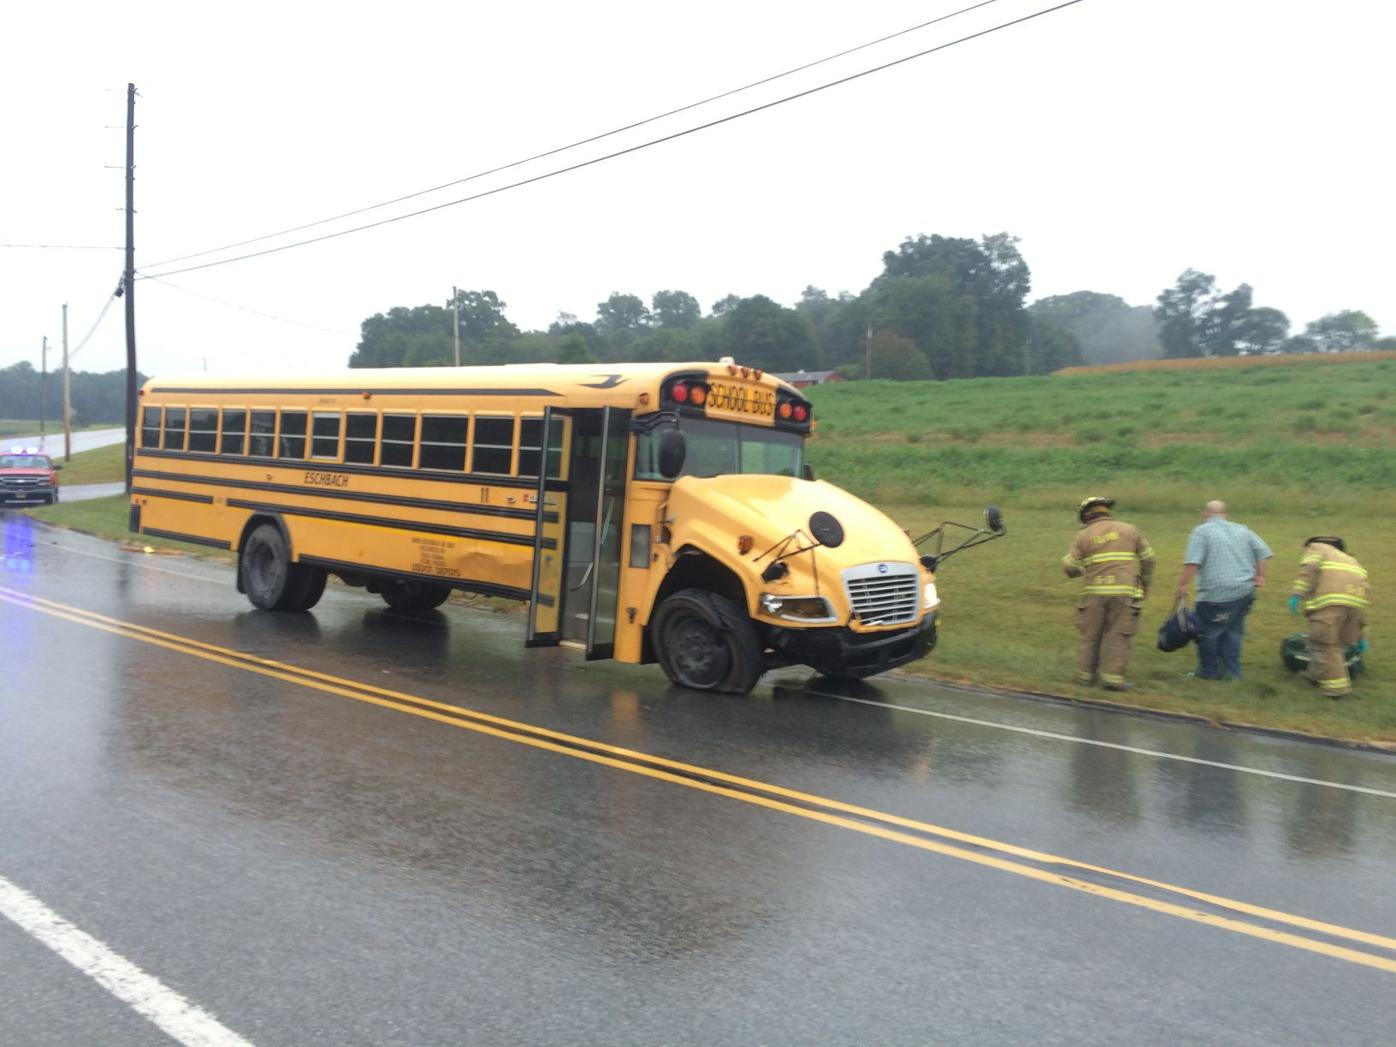 Bus vs. taxi cab in Fulton Township